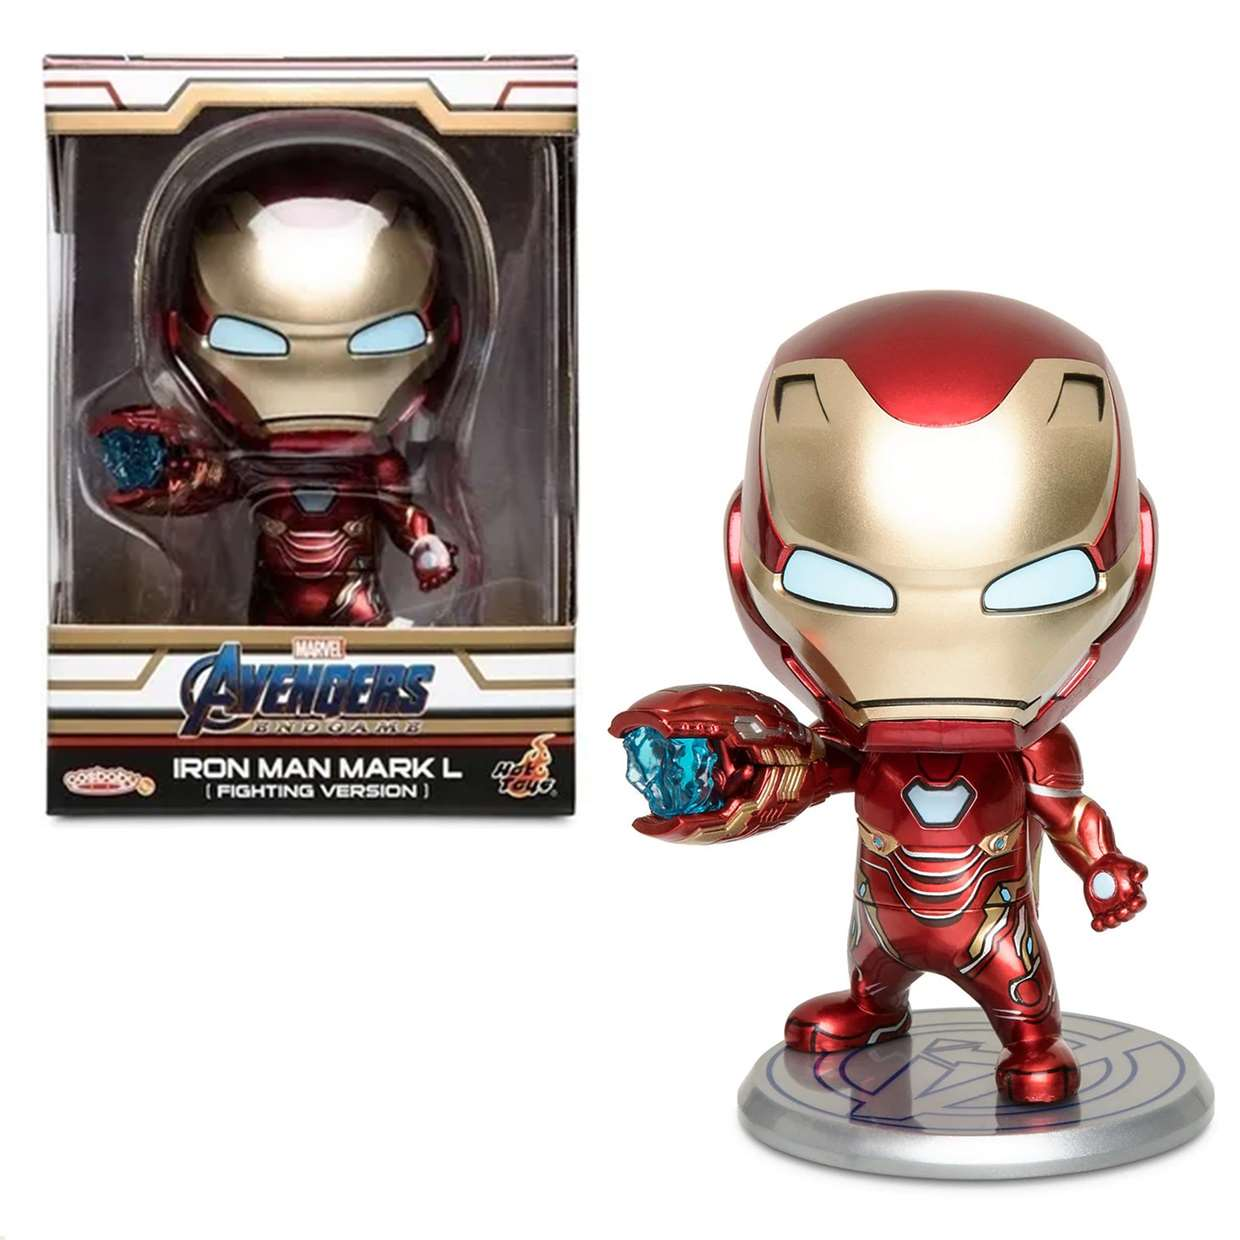 Iron Man Mark L Marvel Avengers End Game Cosbaby Hot Toys